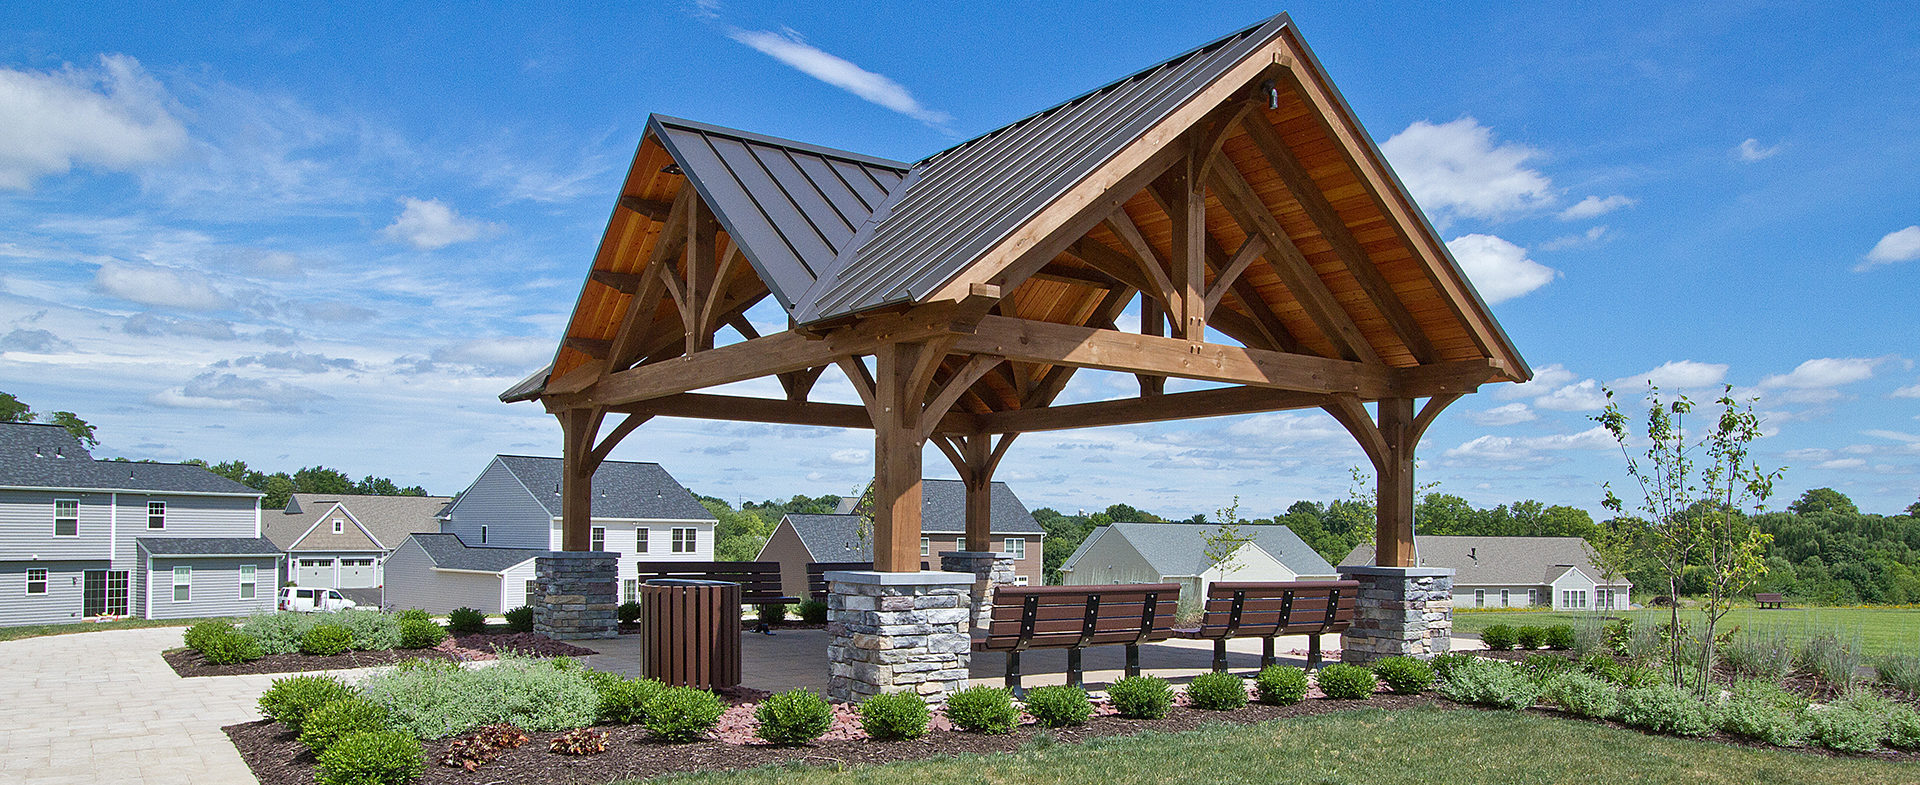 Buy New Homes in PA – EGStoltzfus Homes